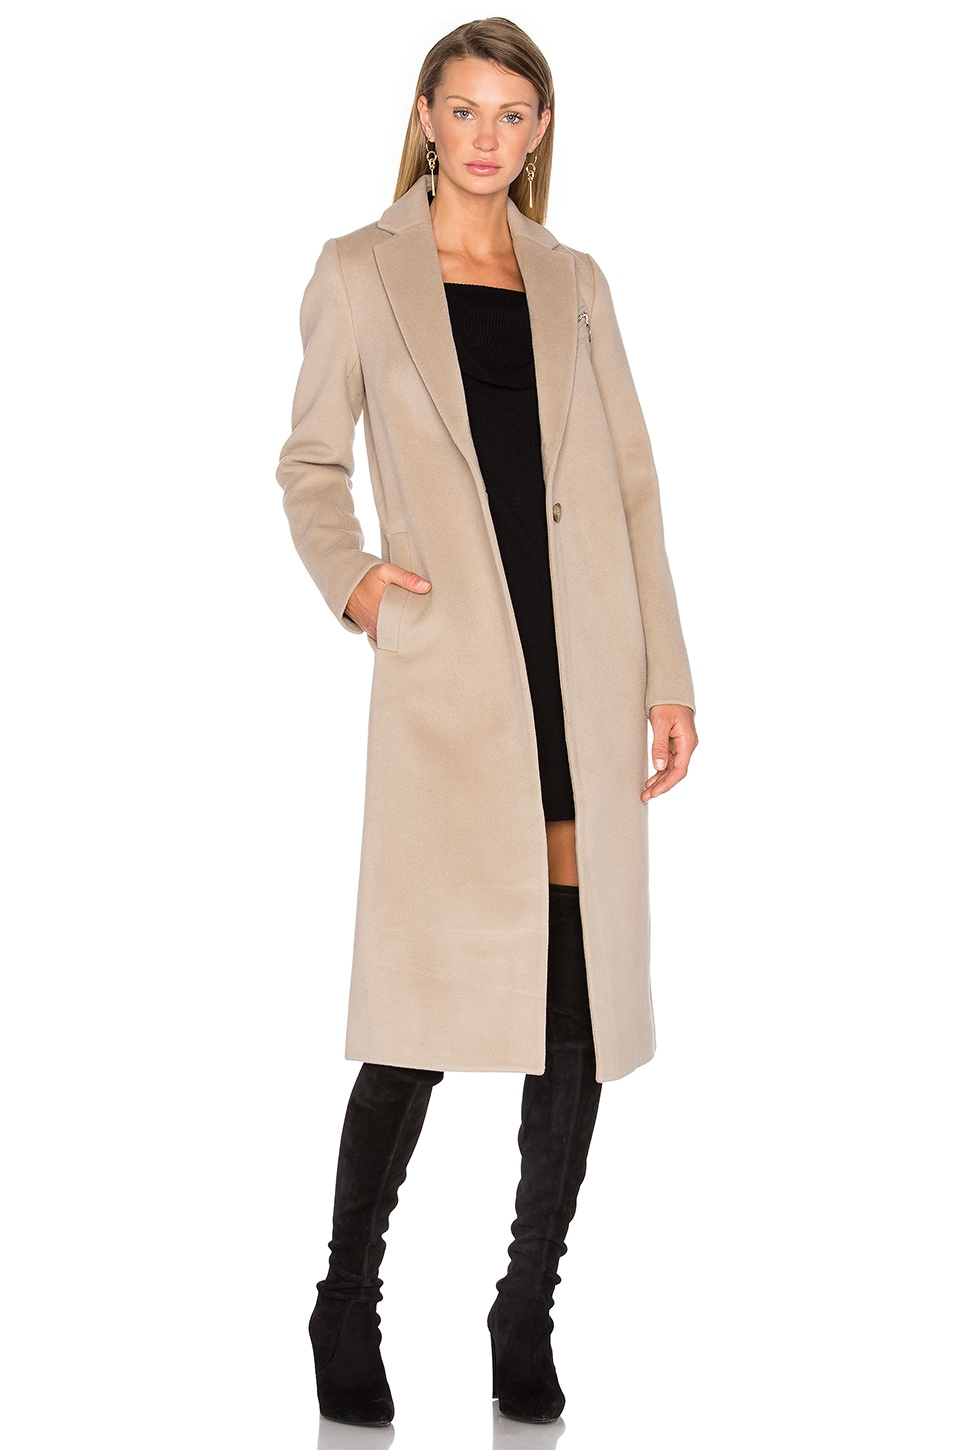 T by Alexander Wang Draped Wool Car Coat in Marble